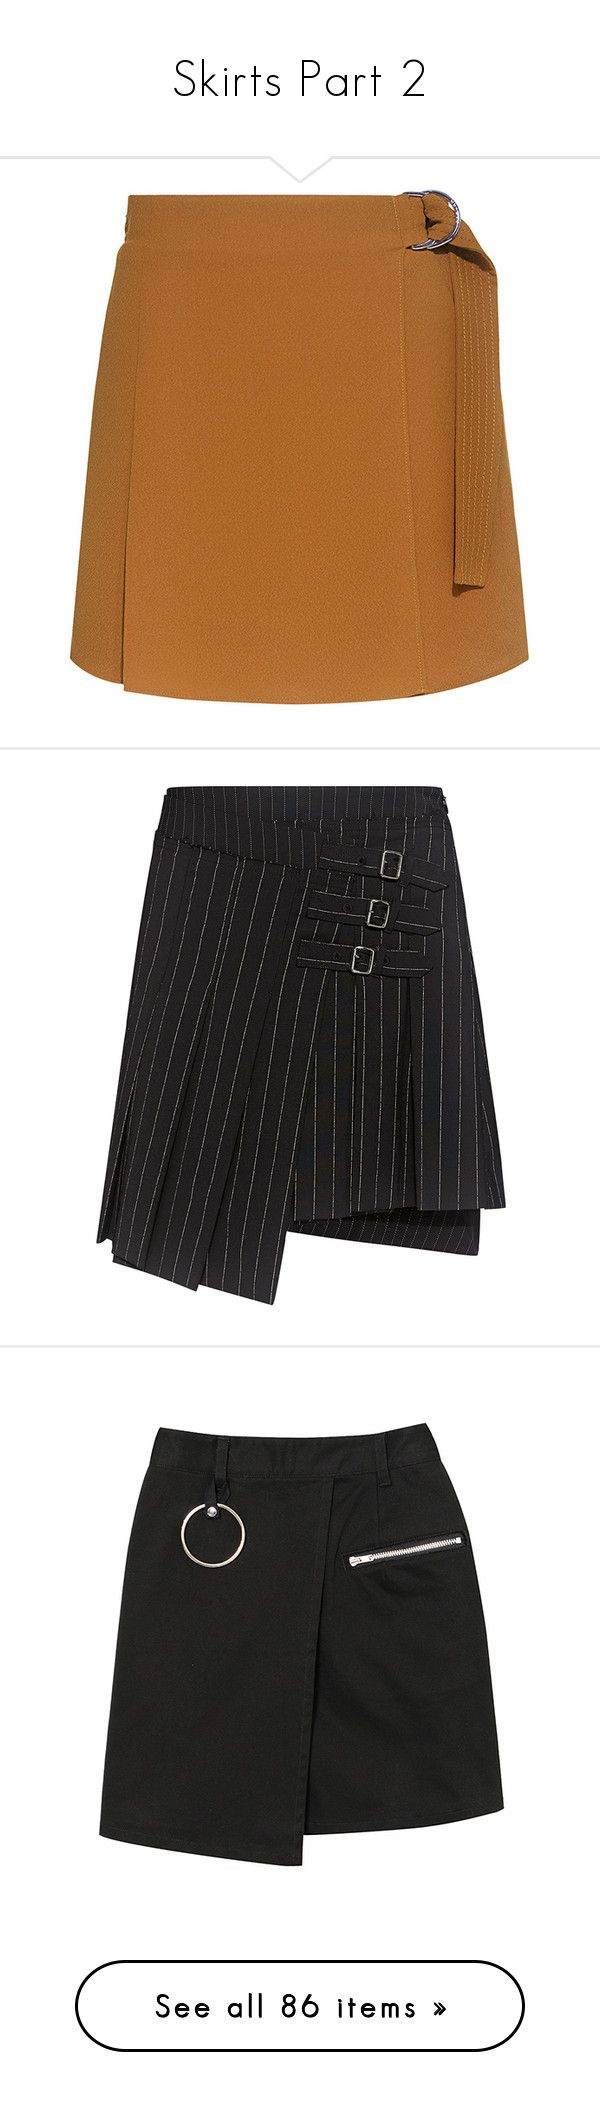 """""""Skirts Part 2"""" by wenseljolie ❤ liked on Polyvore featuring skirts, golf skirts, wrap skort, mini skirts, pleated mini skirt, mcq by alexander mcqueen, wrap mini skirt, striped skirts, stripe skirts and puffy skirts"""